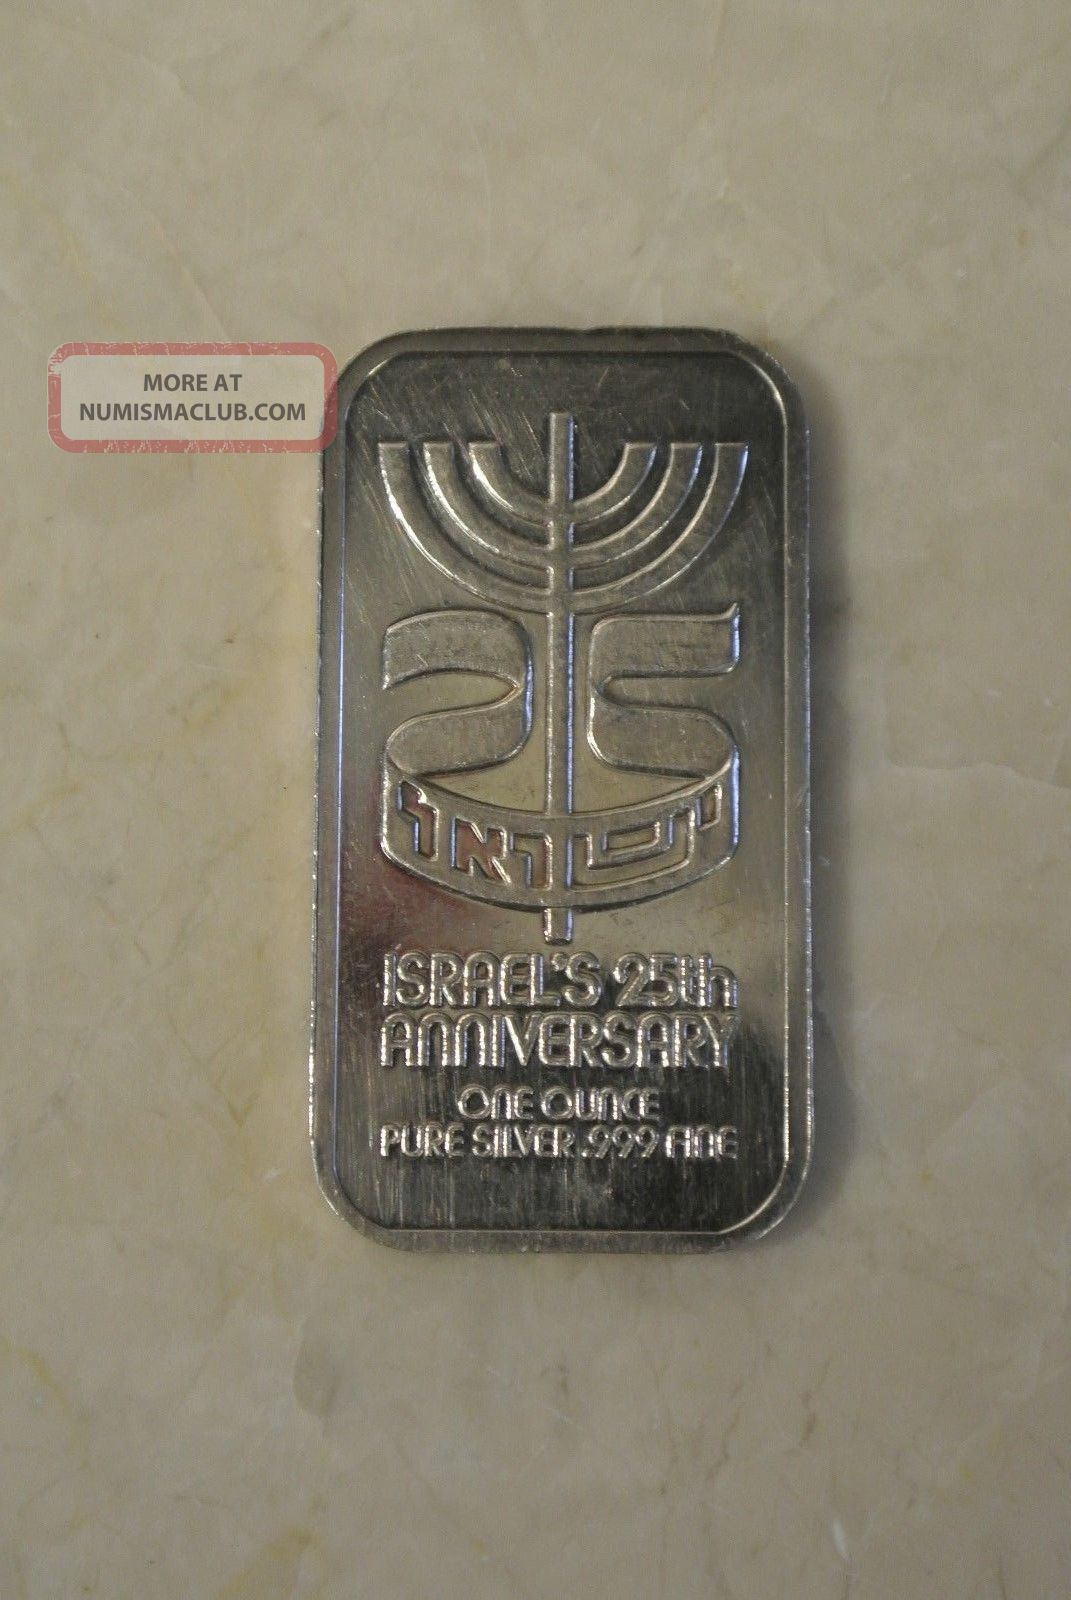 Israel 25th Anniversary One Ounce 999 Fine Silver Bar